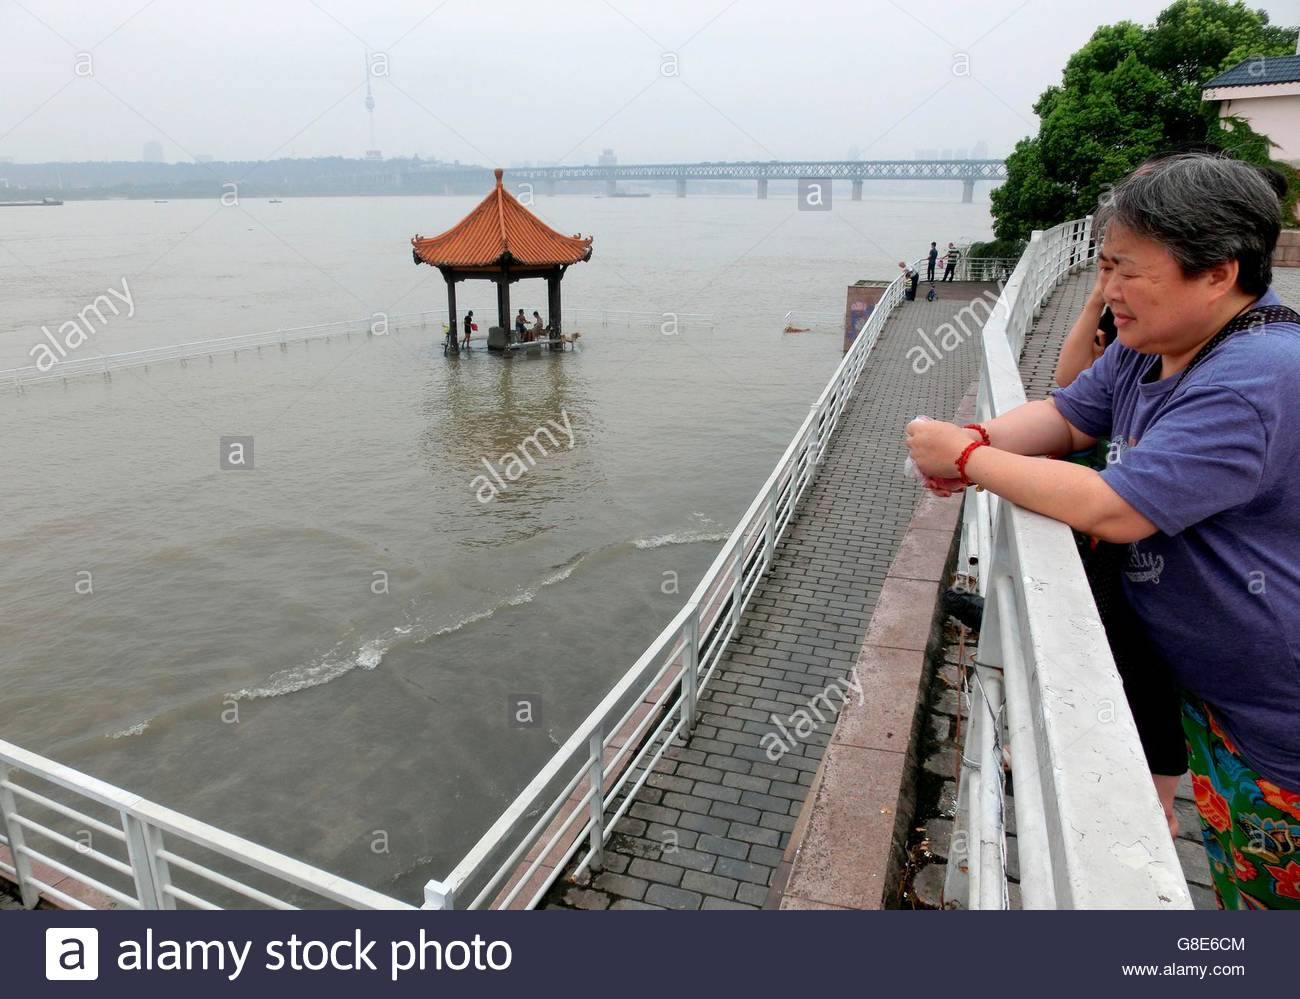 Wuhan, China. 29th June, 2016. A local waterborne platform submerged by the river with endless heavy rainfall that - Stock Image